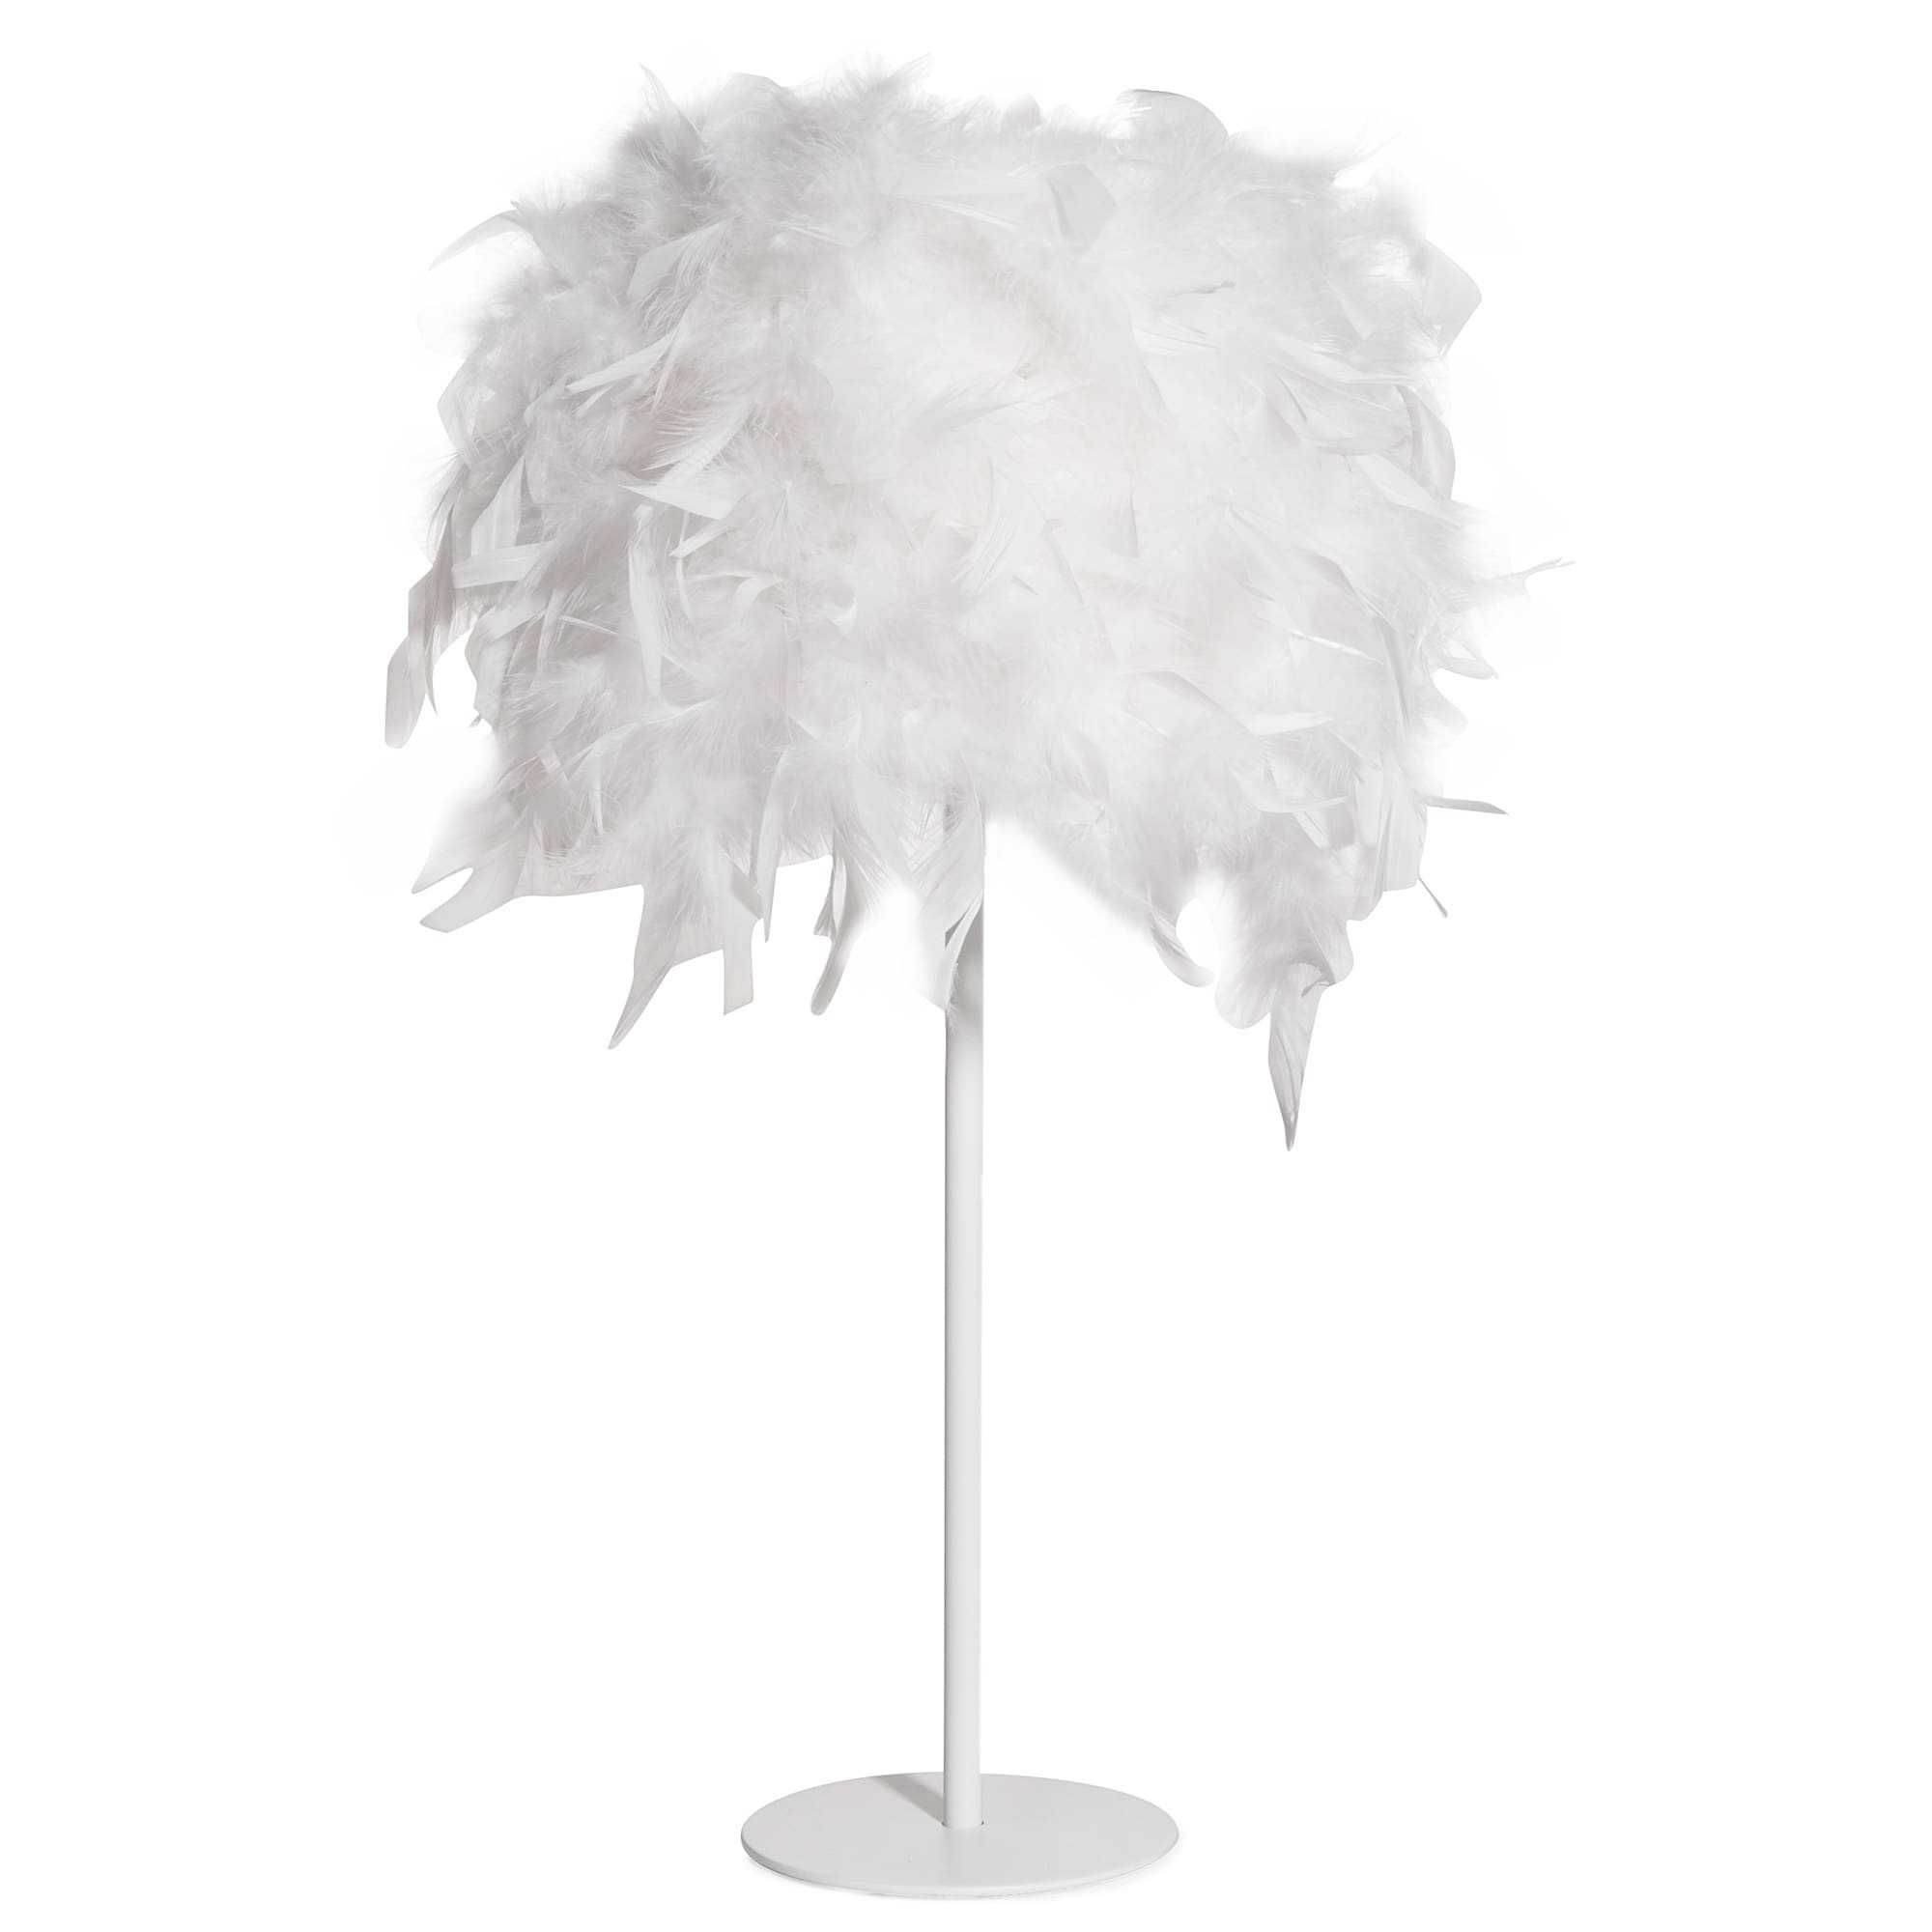 lampe en m tal abat jour plumes blanches feathers inspiratie slaapkamer pinterest plume. Black Bedroom Furniture Sets. Home Design Ideas